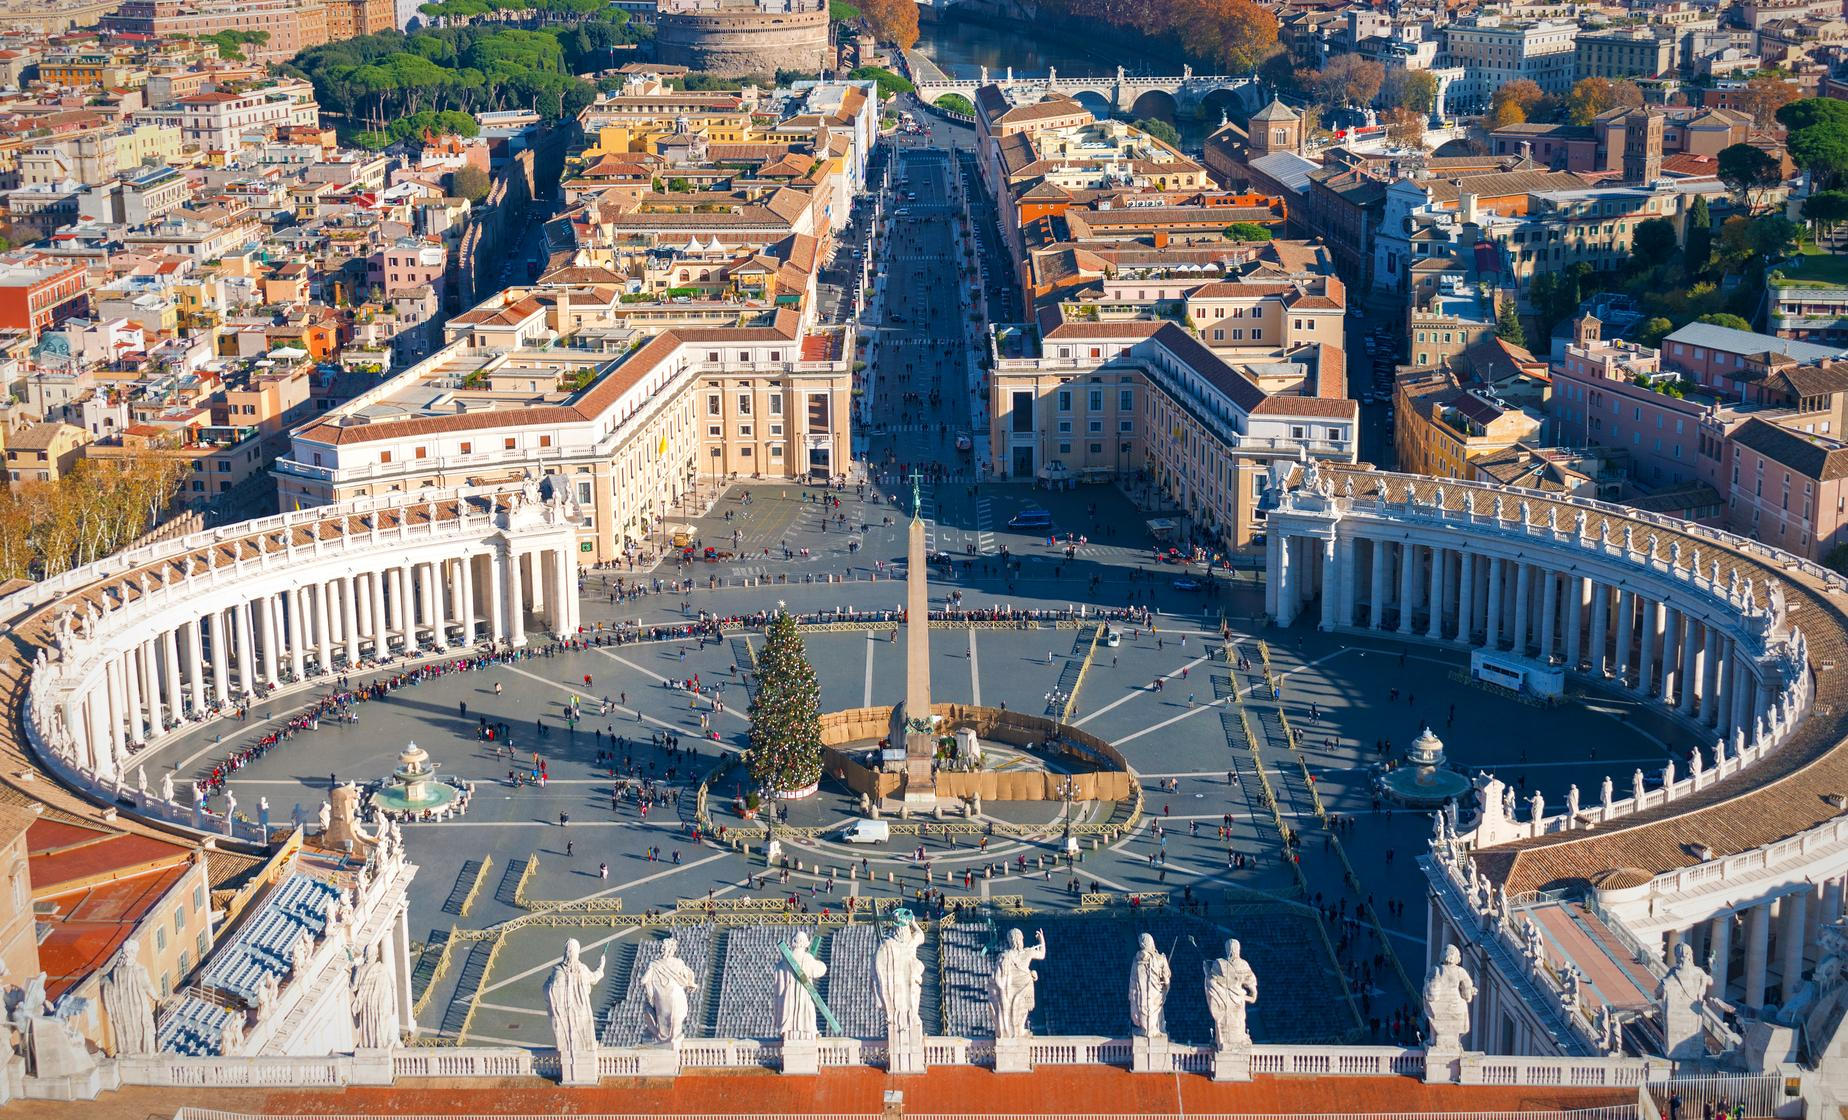 Private Vatican, Coliseum and Old Rome Tour (Sistine Chapel, St. Peter's Basilica)